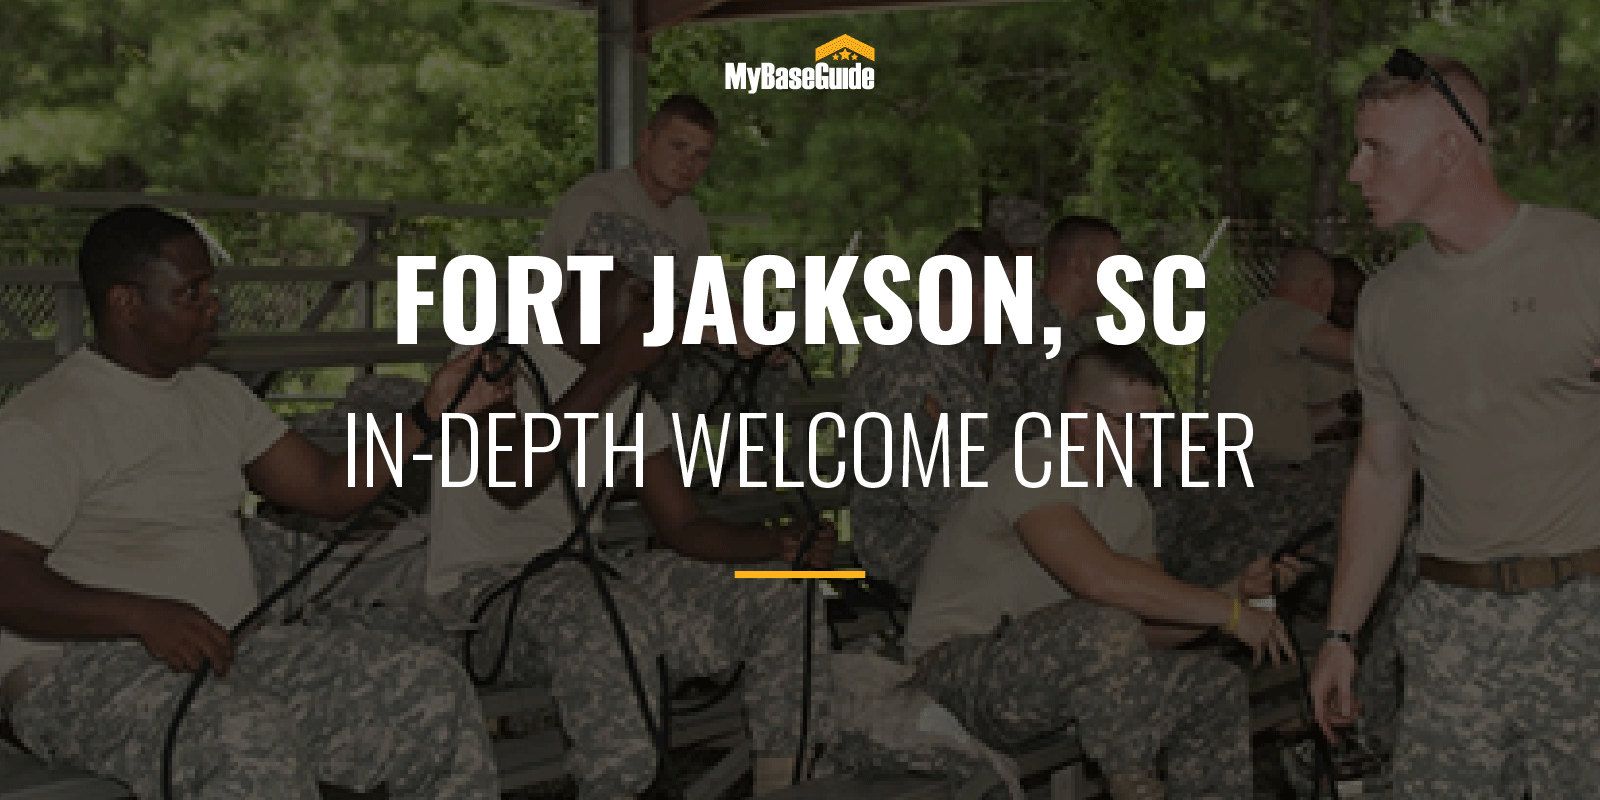 Fort Jackson In-Depth Welcome Center